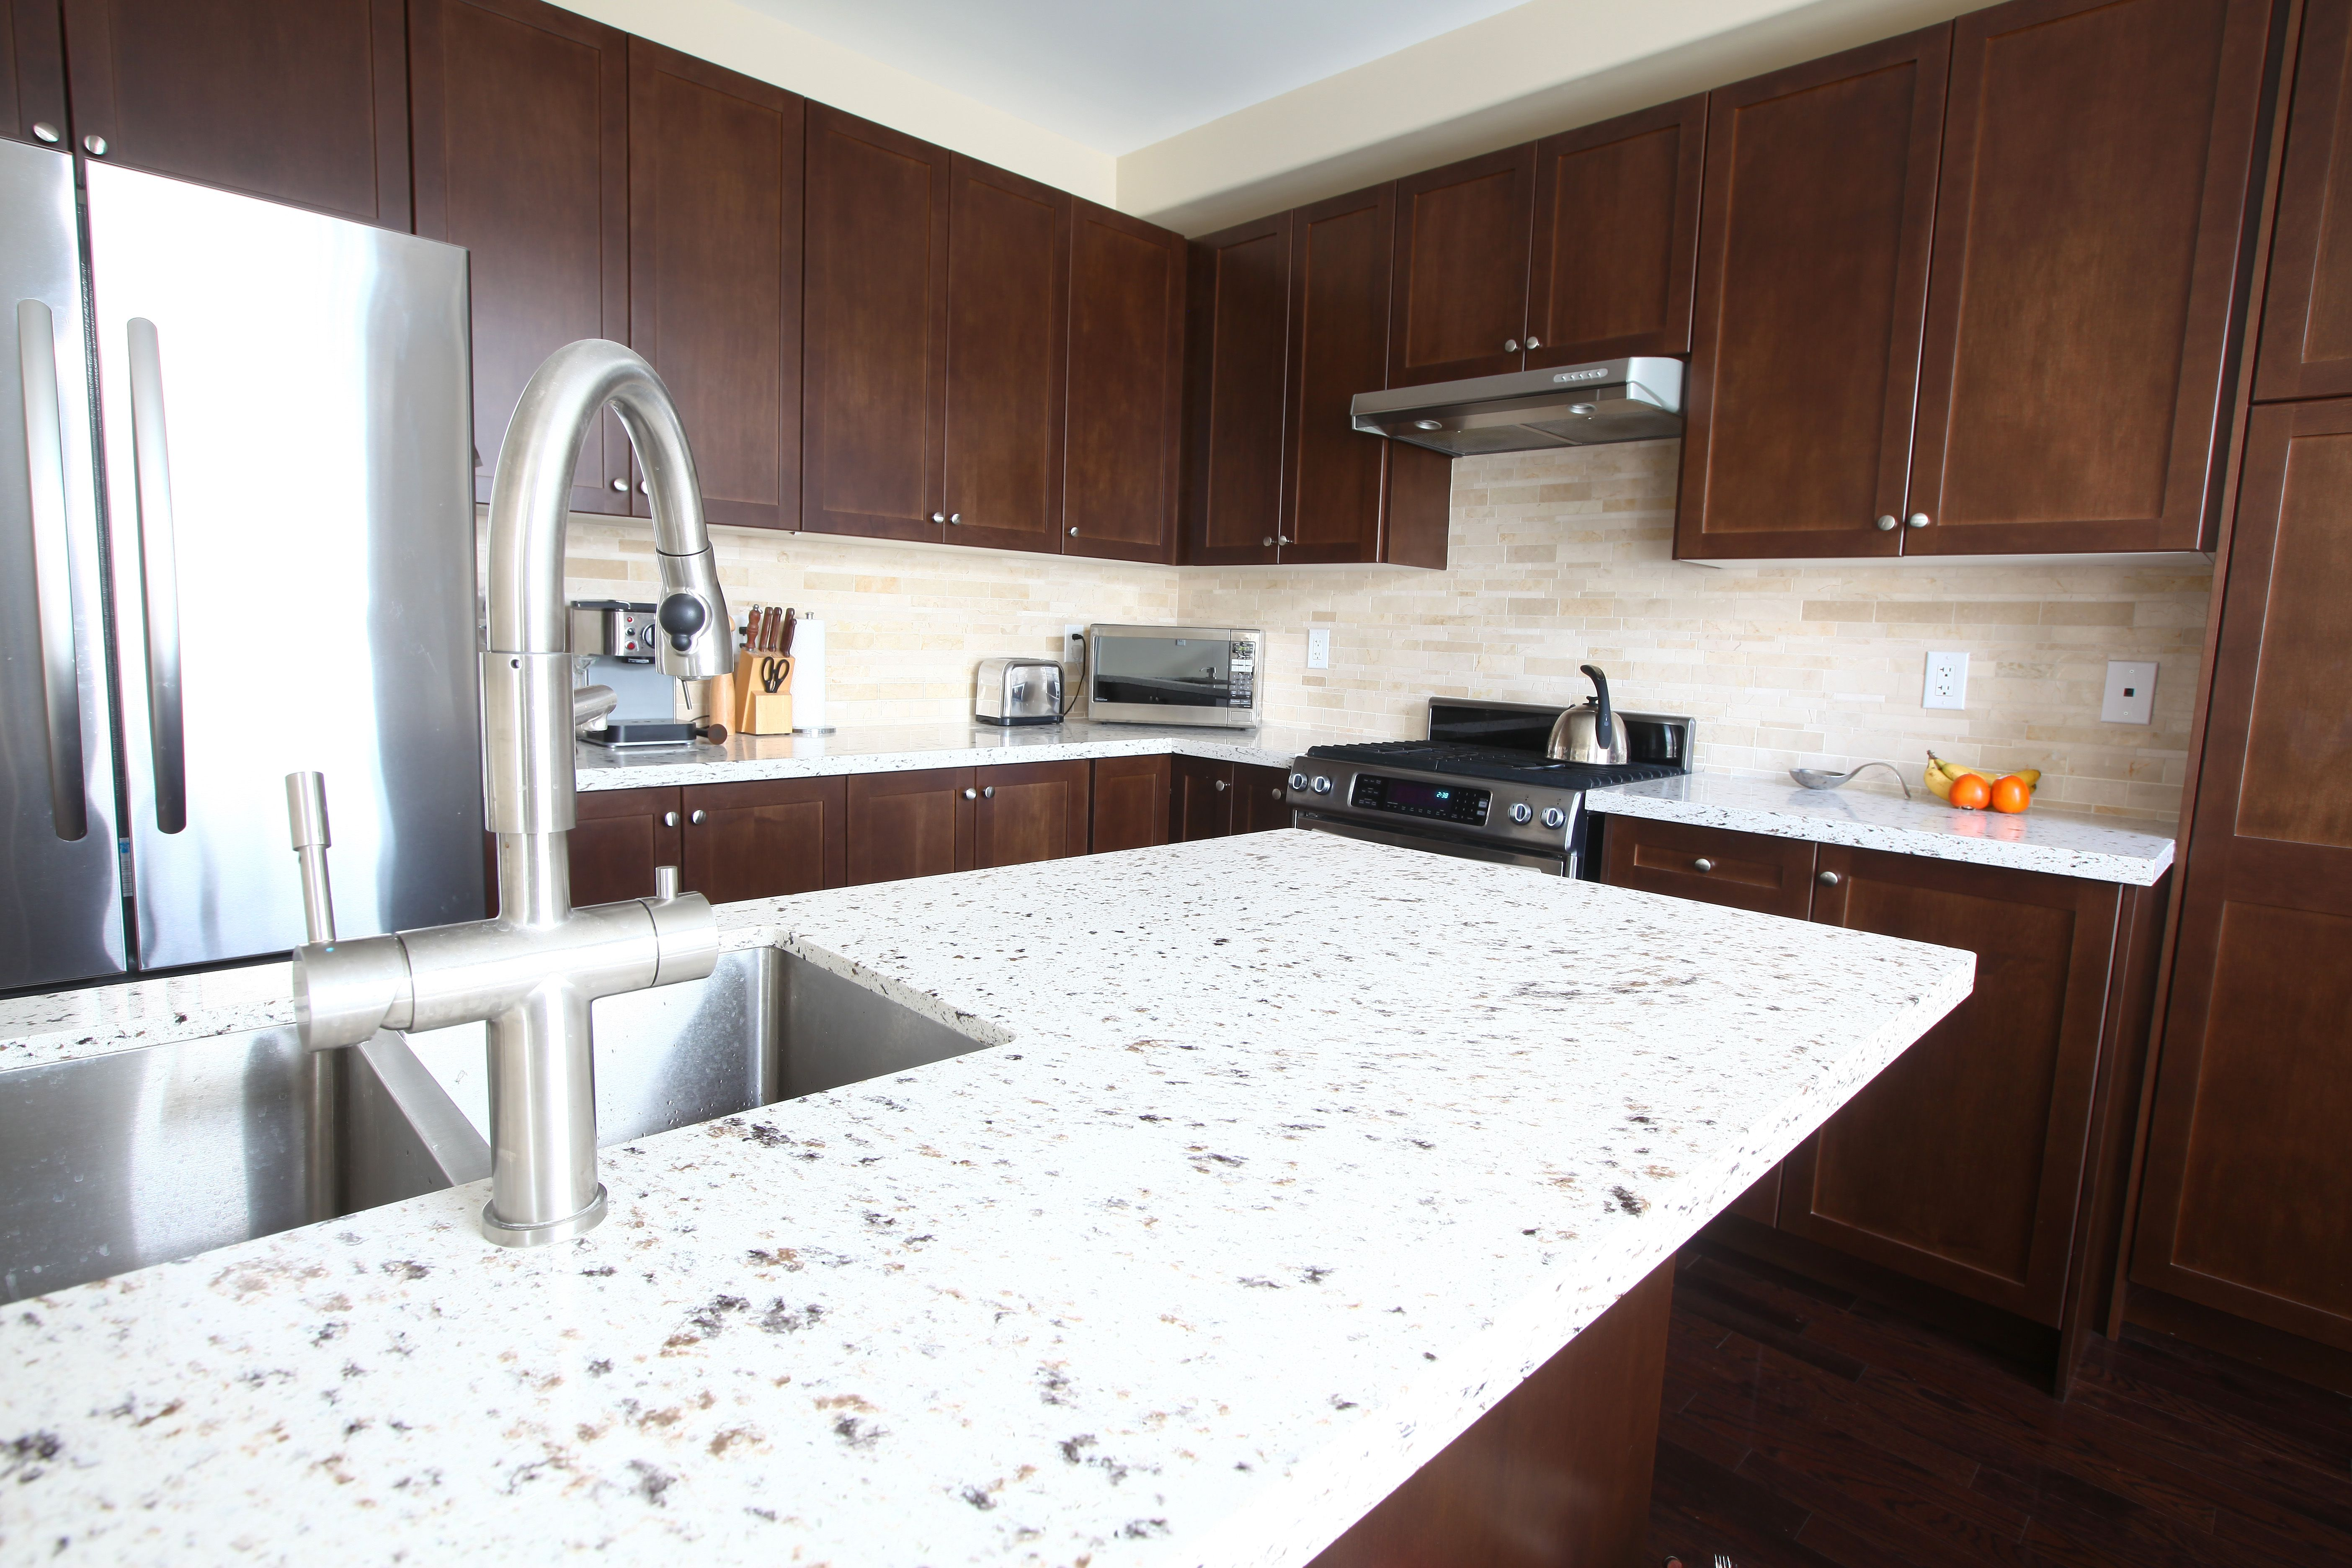 kitchen countertops quartz cottage style chairs solid surface vs countertop domestic with and chestnut cabinets